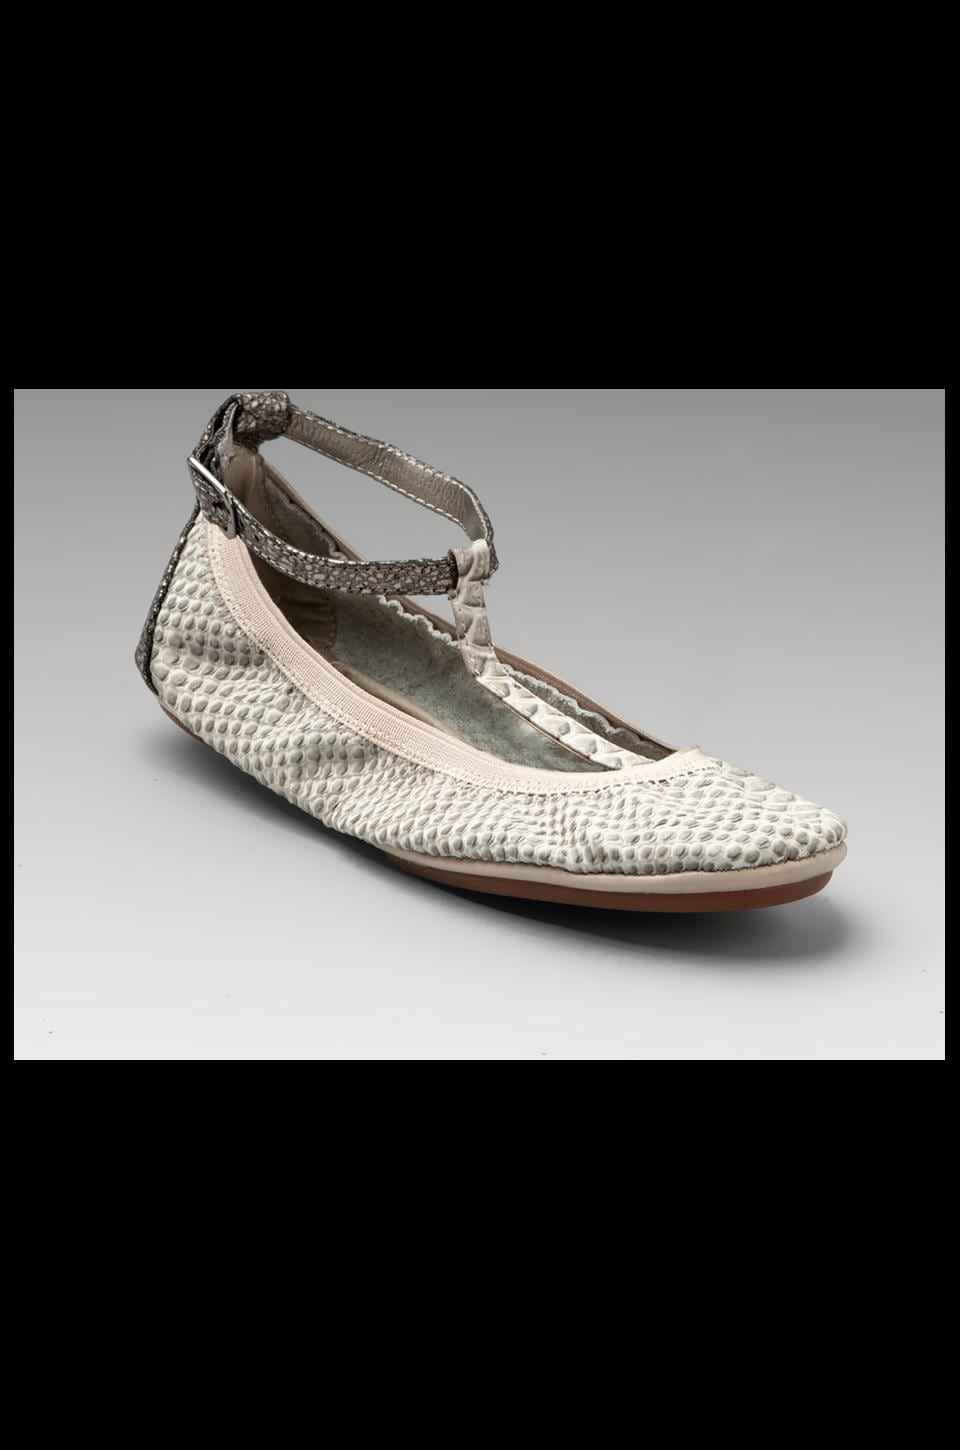 Yosi Samra Crock Strap Ballet Flat in Cream/Pewter